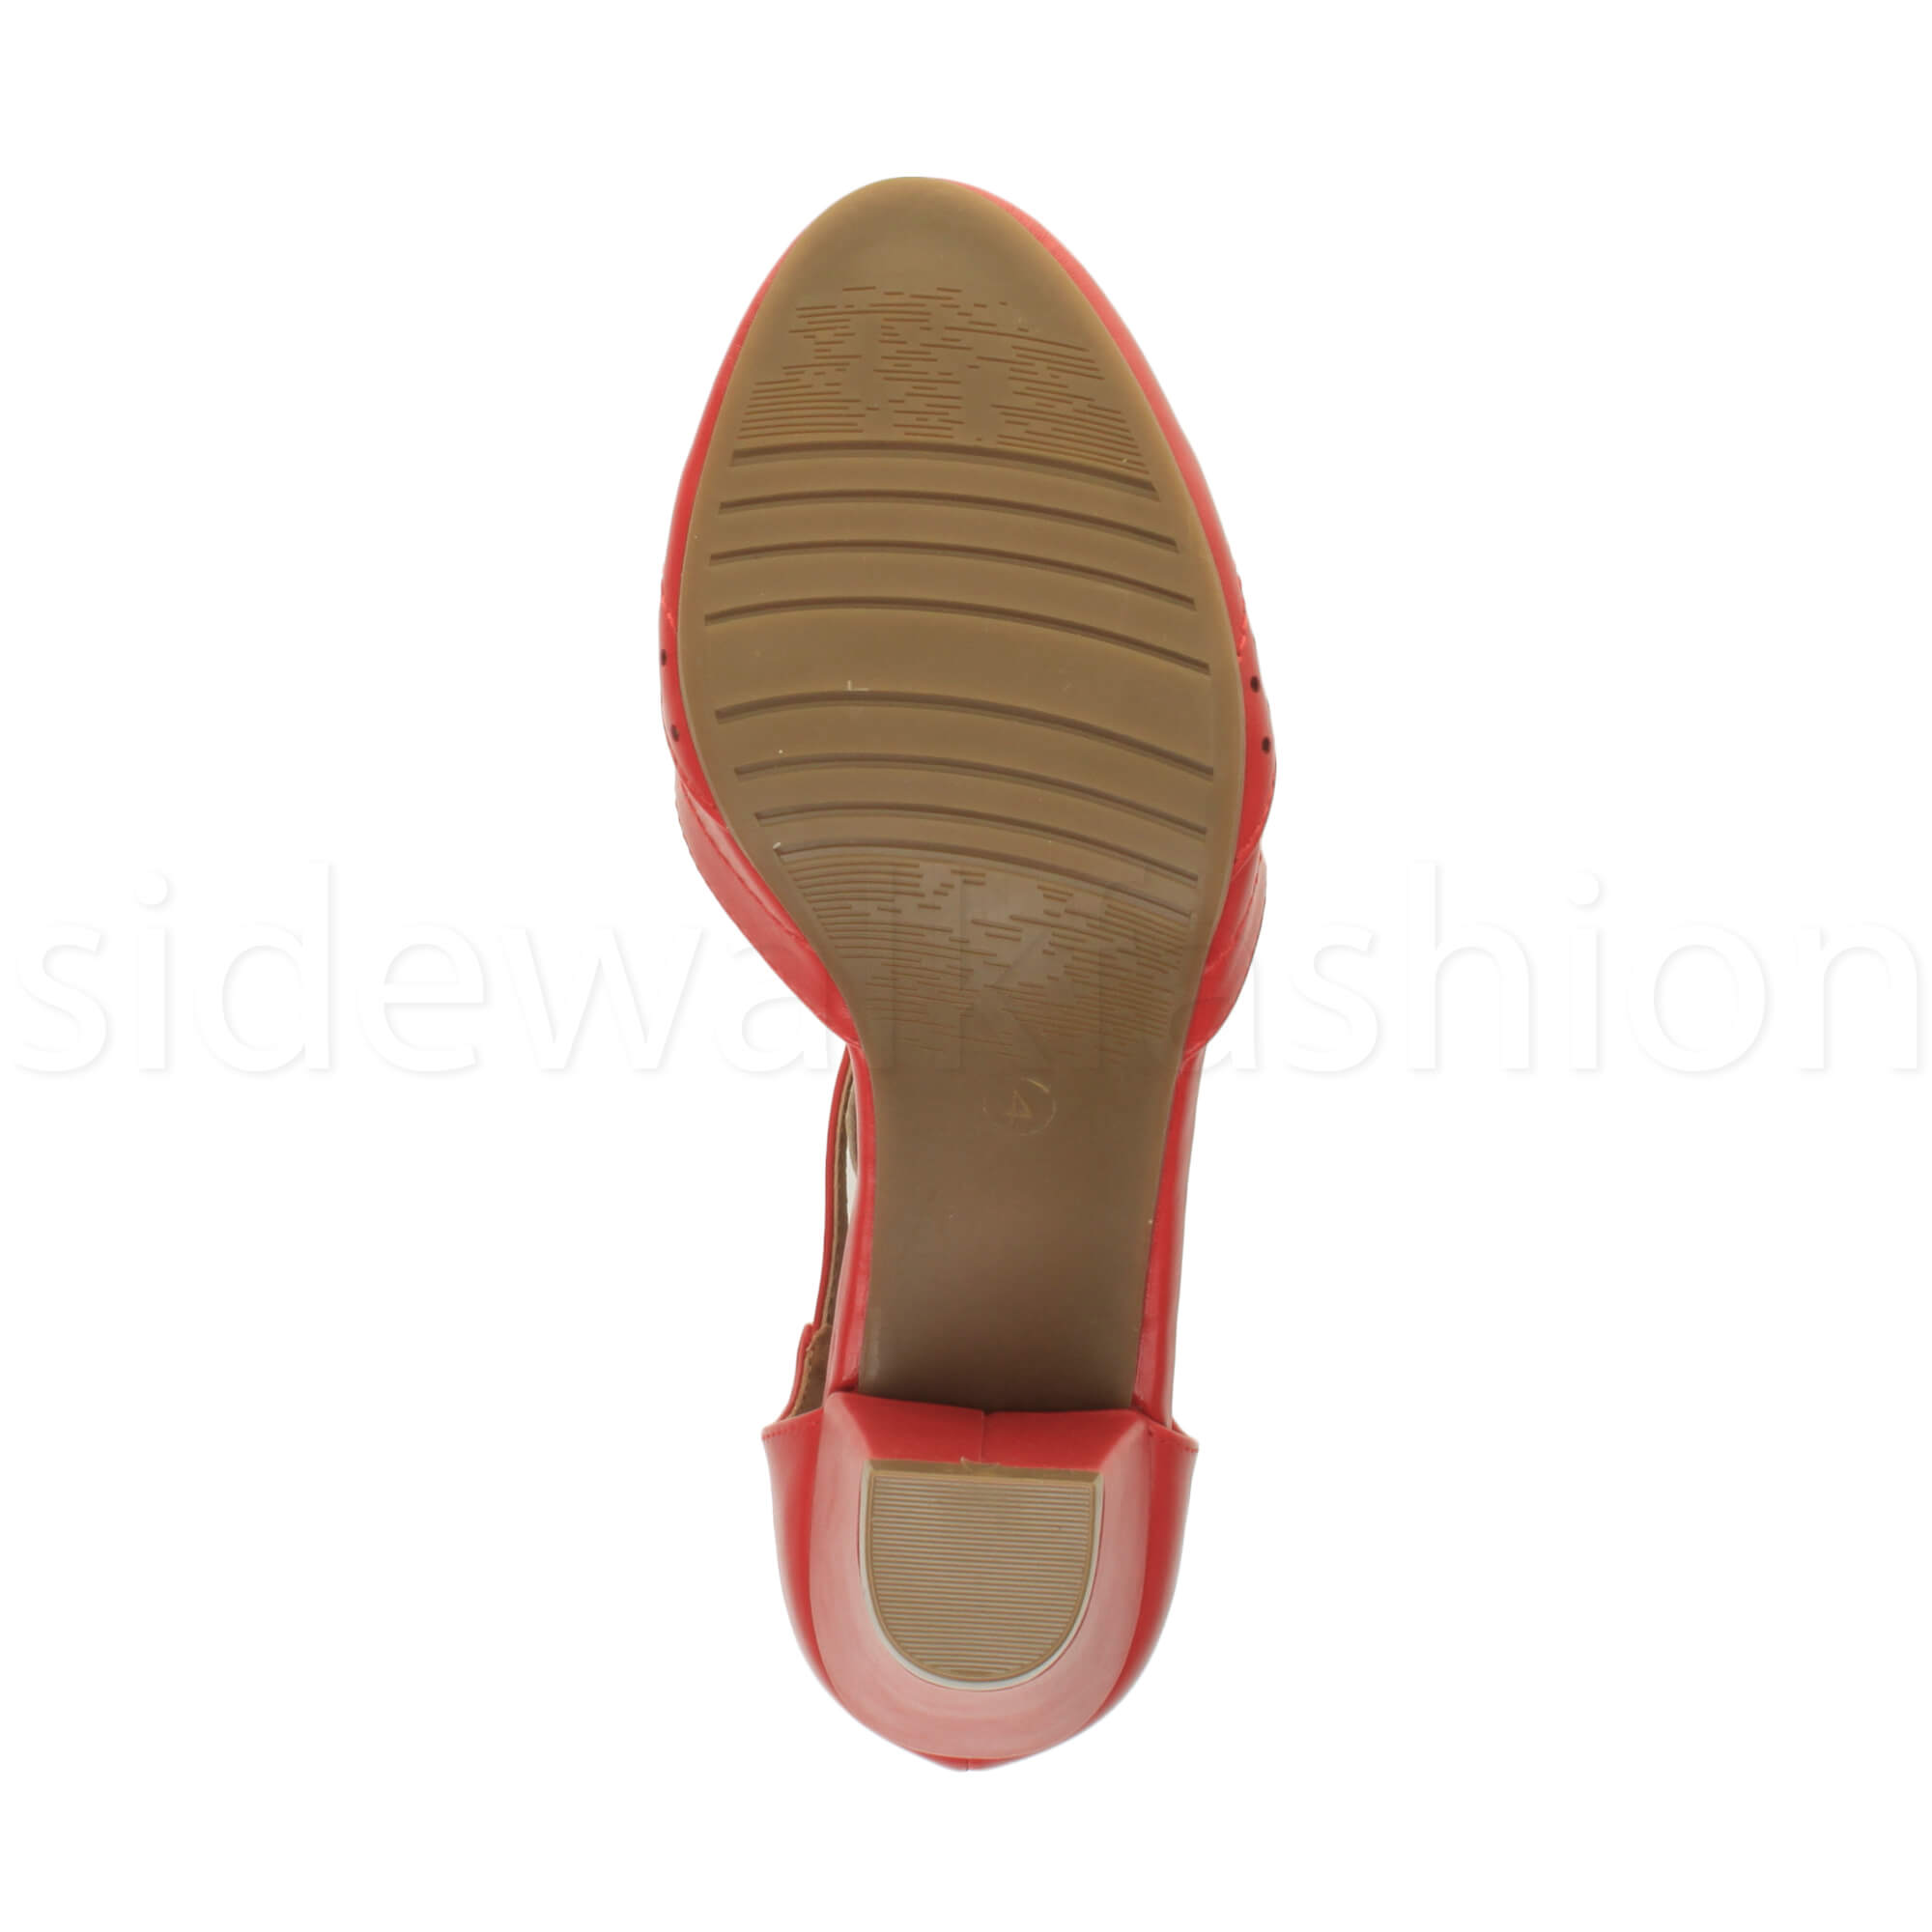 Womens-ladies-block-low-mid-heel-smart-work-Mary-Jane-T-bar-brogue-court-shoes thumbnail 64